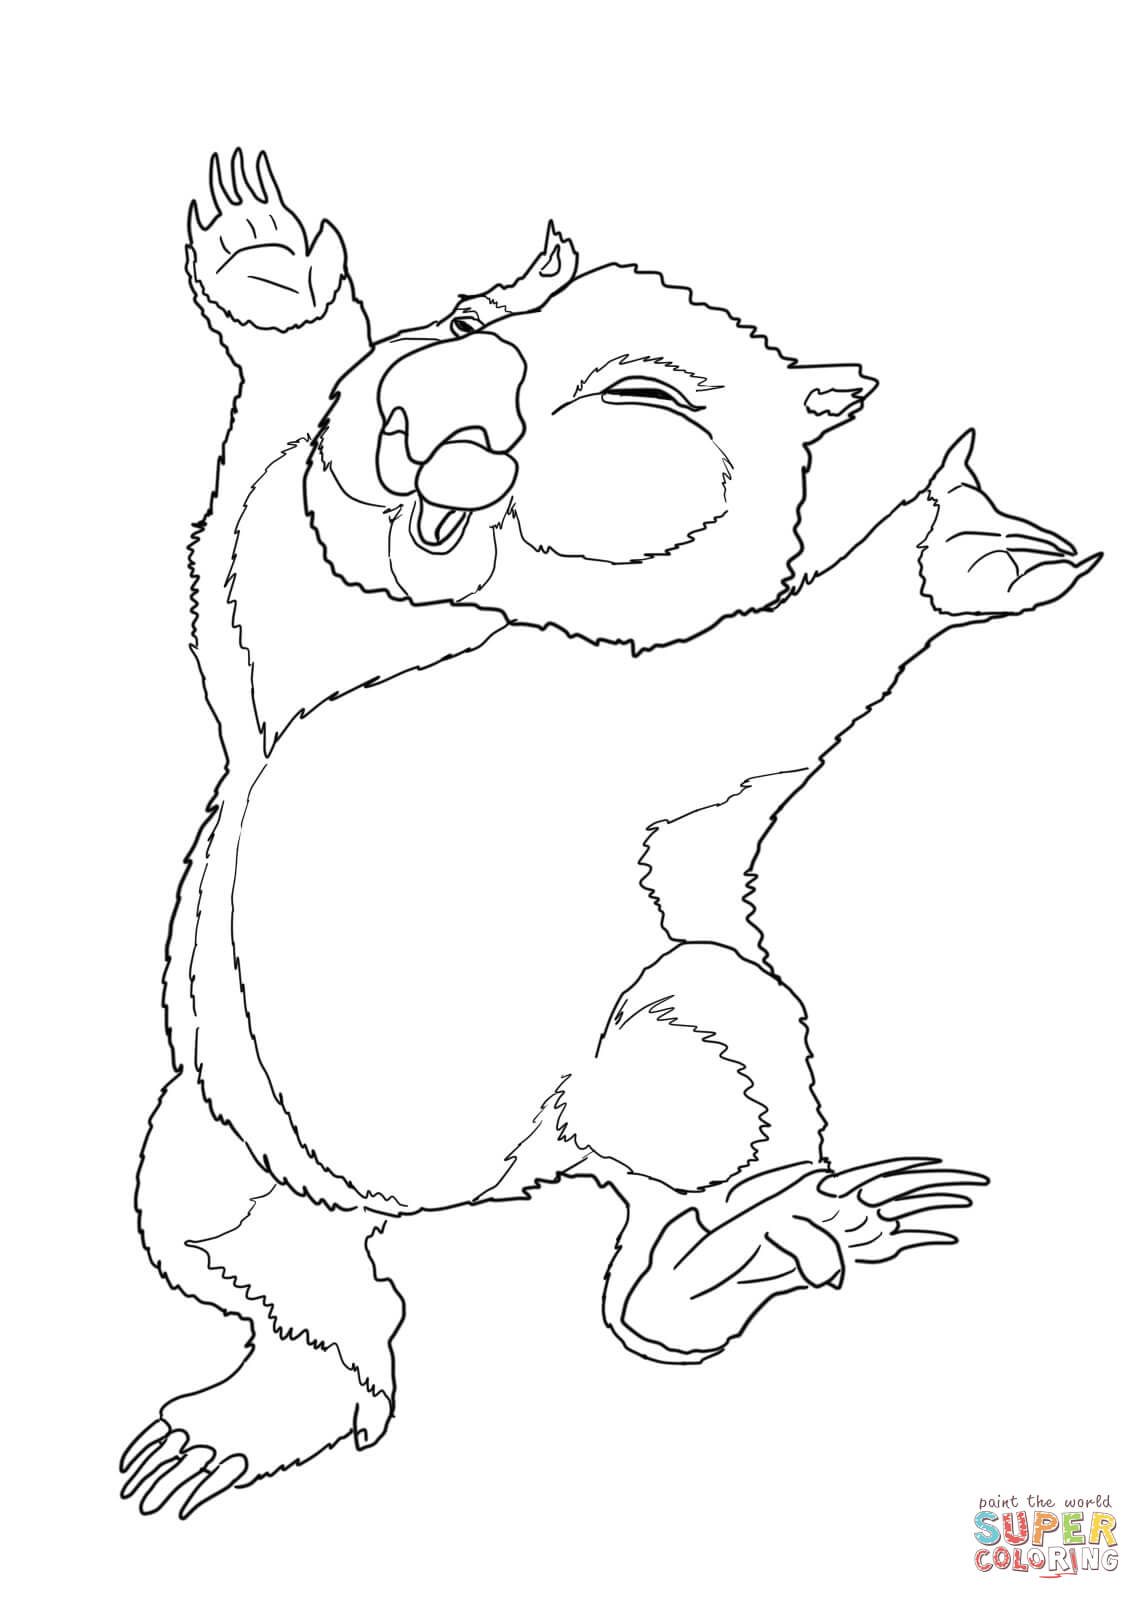 wombat colouring pages wombat coloring download wombat coloring for free 2019 pages colouring wombat